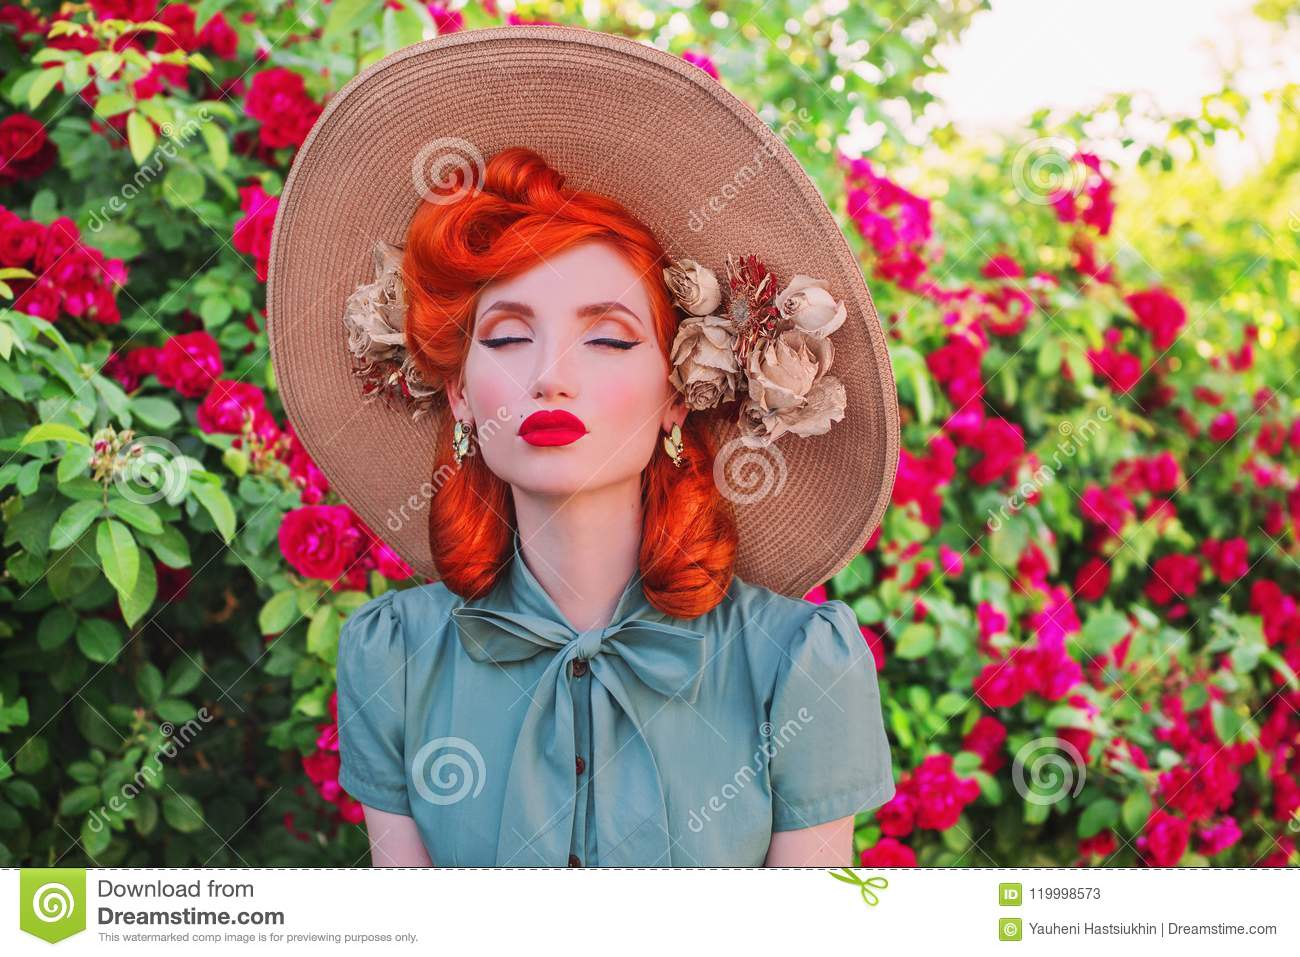 Luxury Retro Girl With Red Lips In Mint Dress On A Beautiful Flower